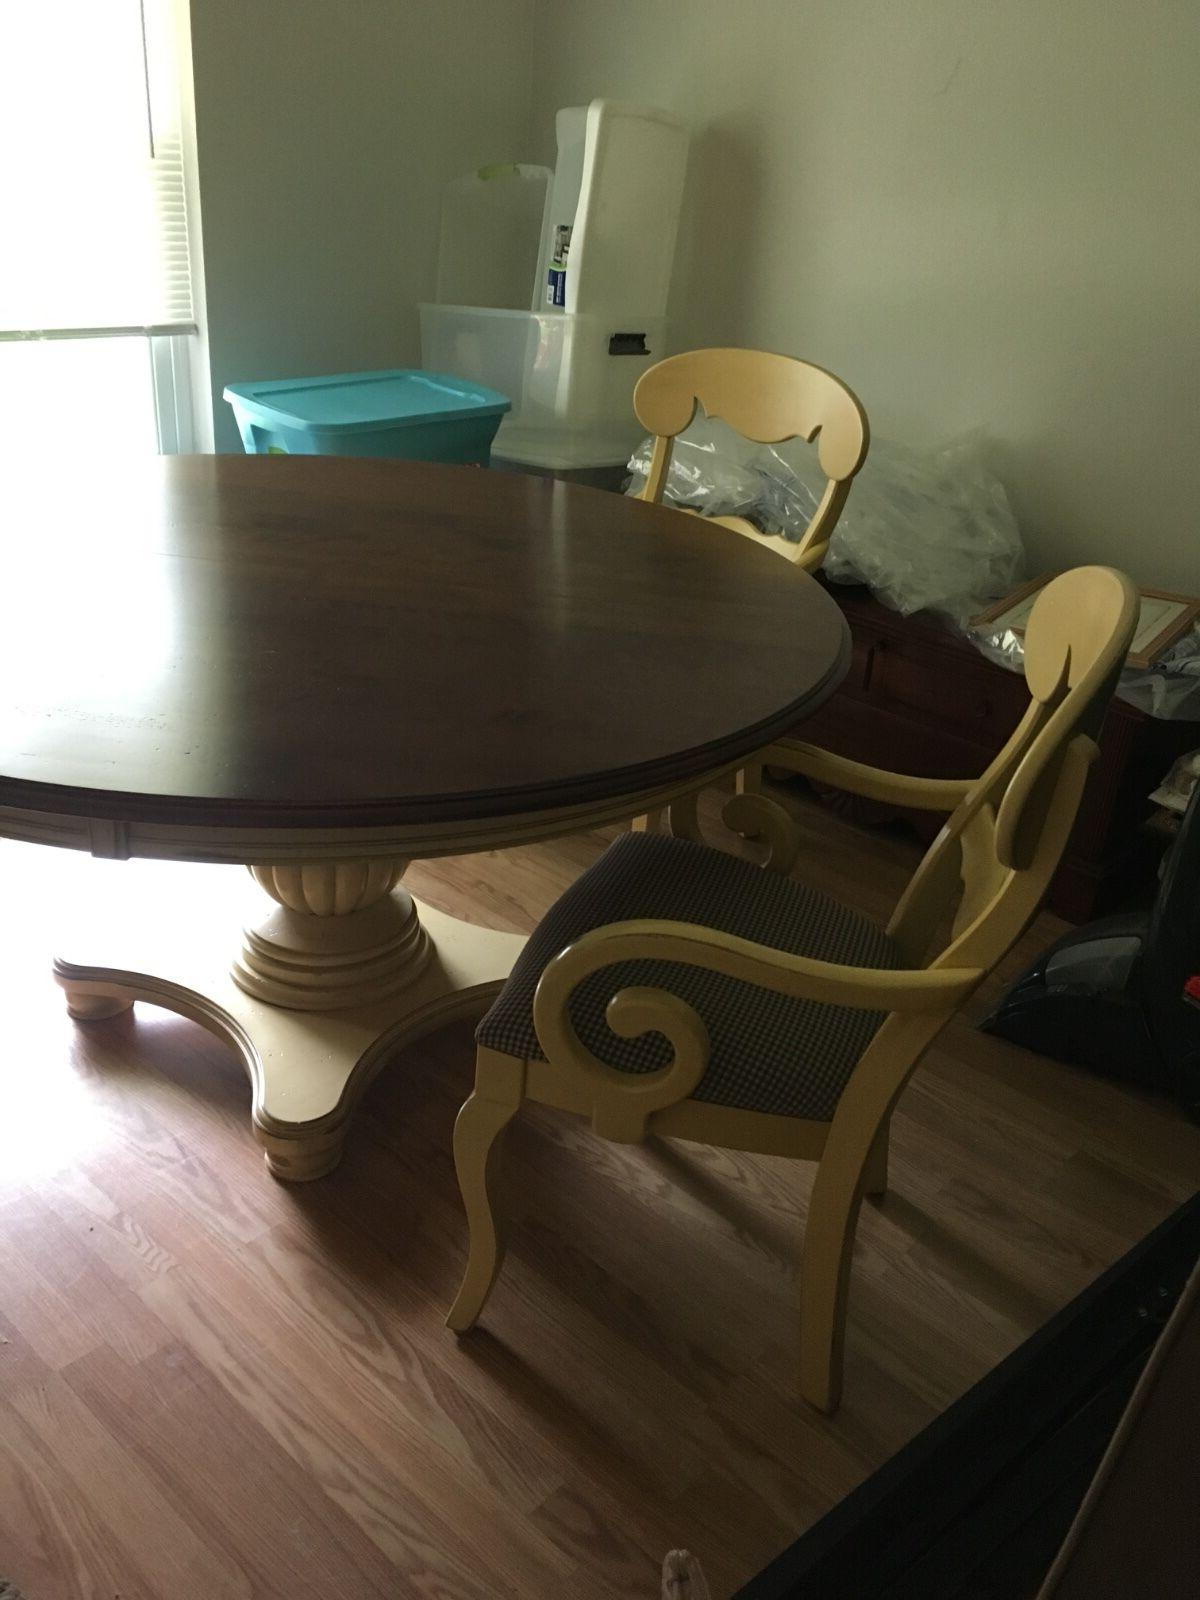 kitchen dining set Nichols and stone large round pedalstal t